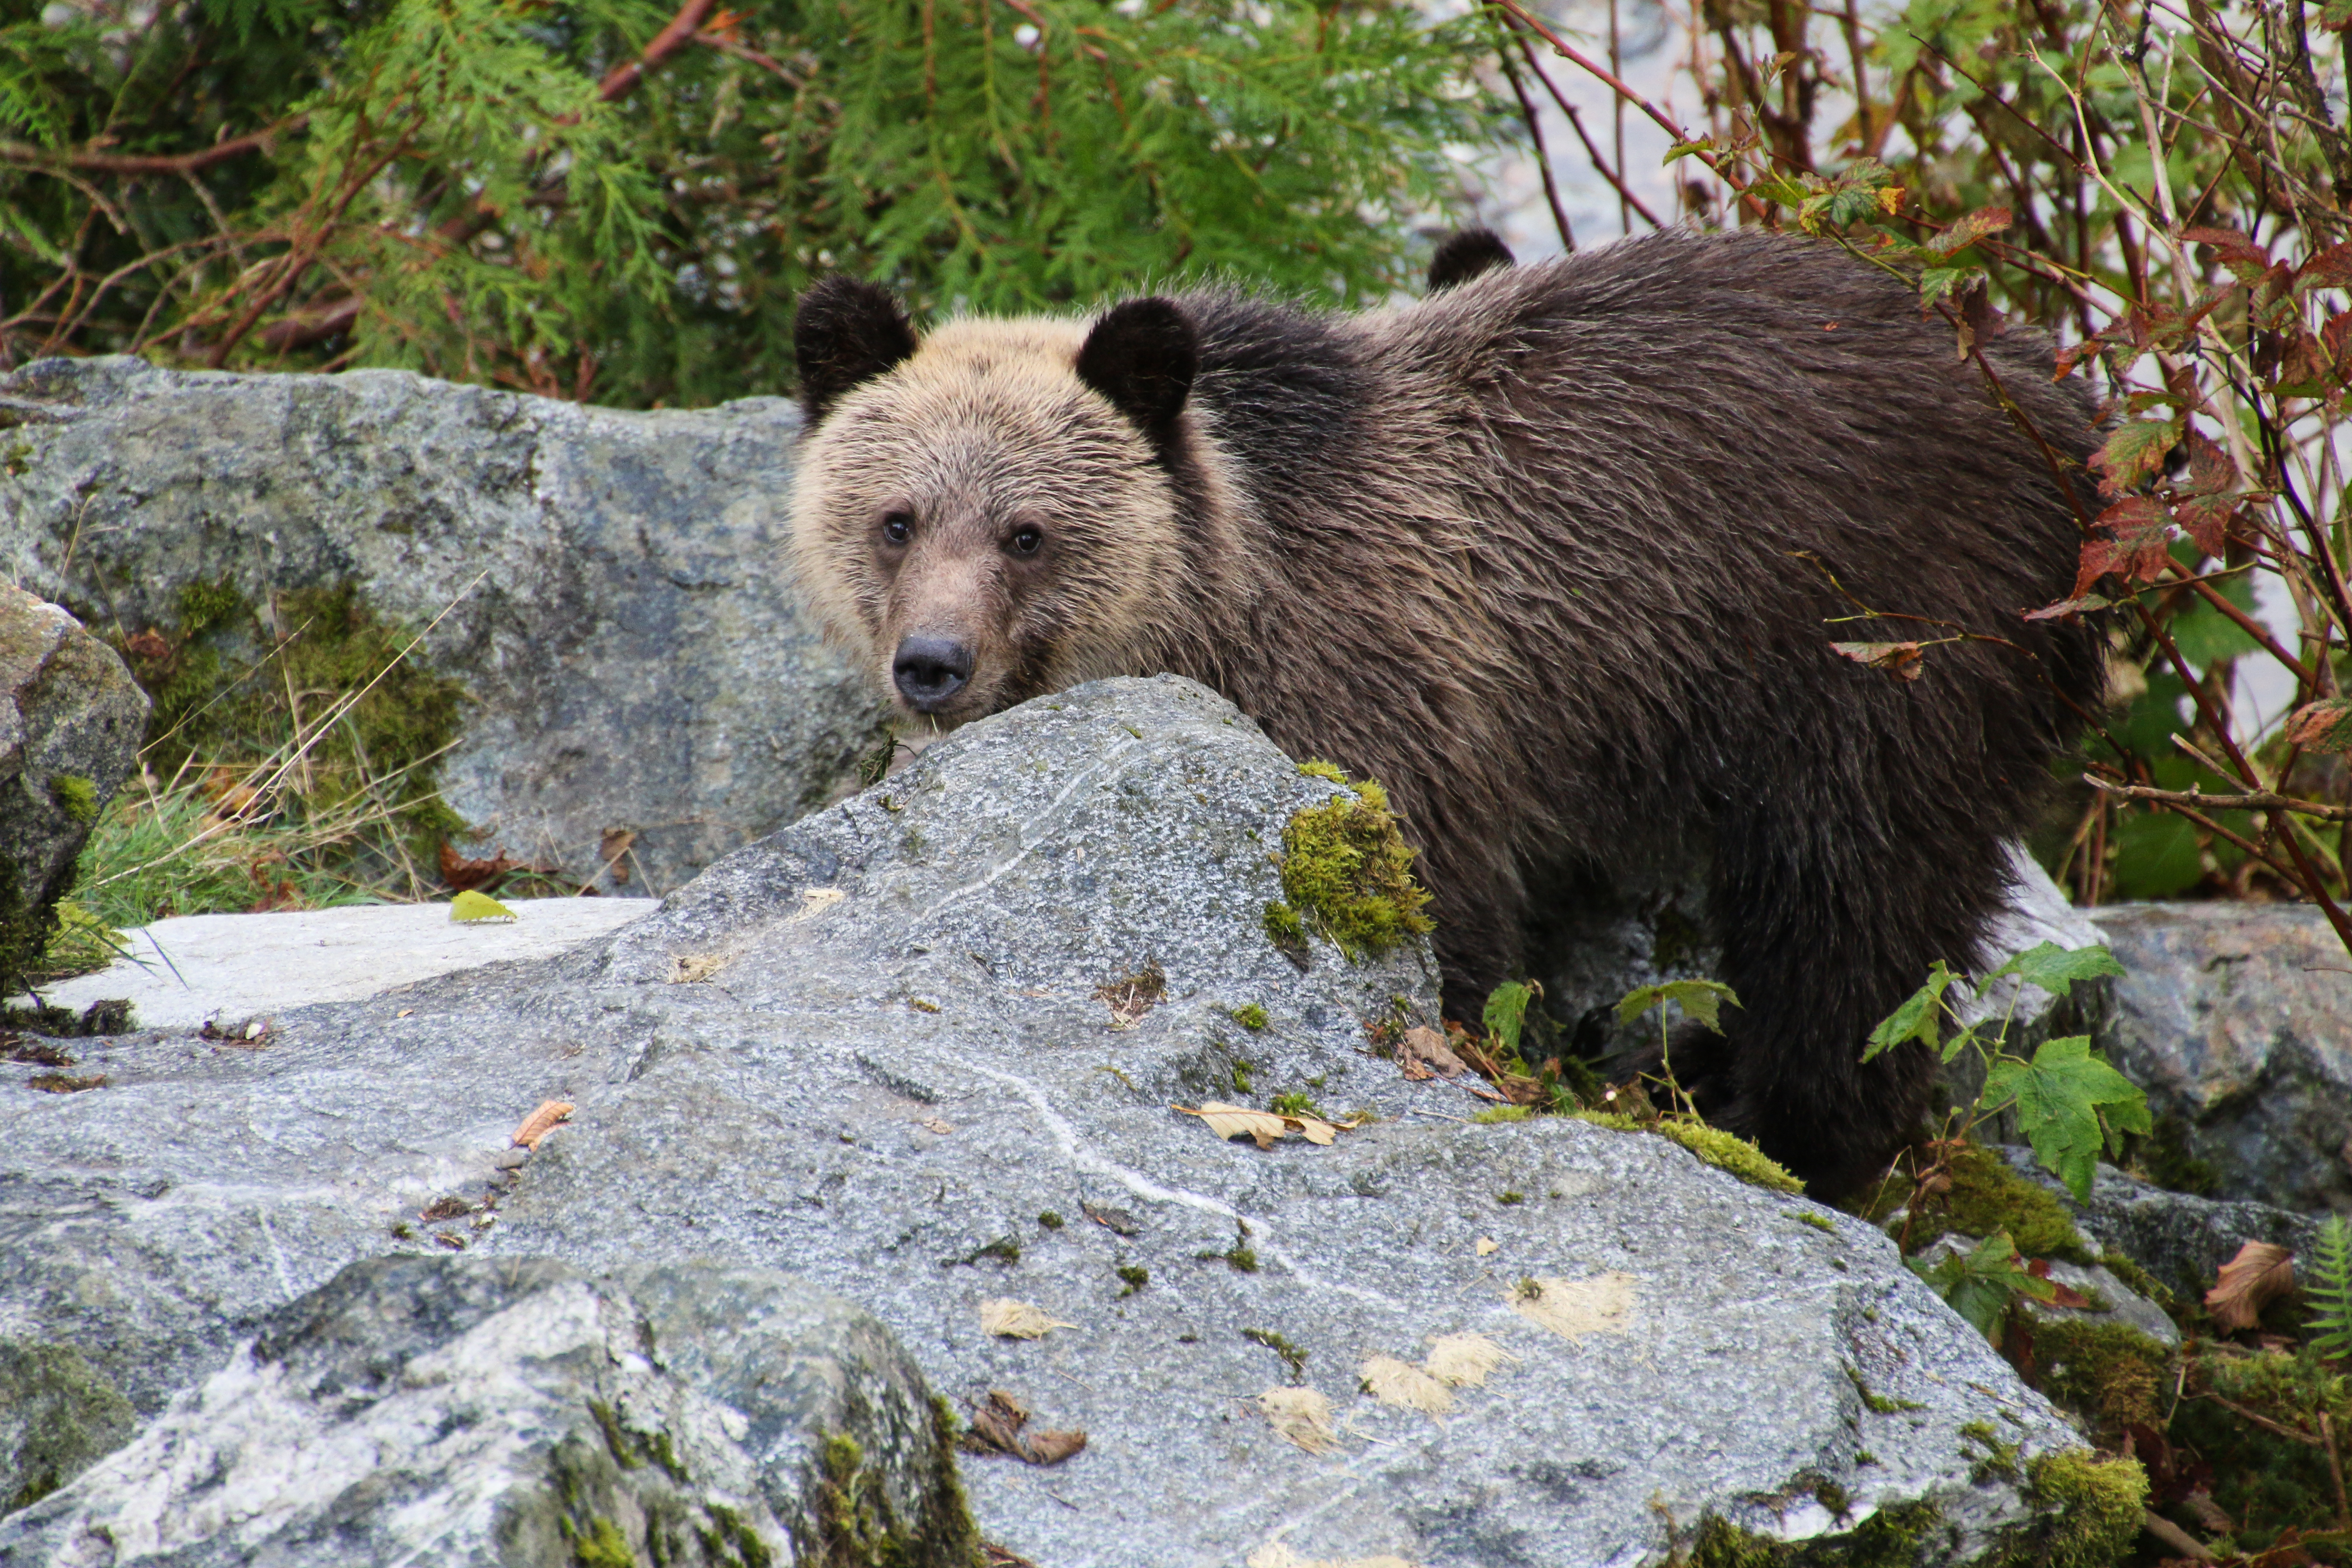 53641 download wallpaper Animals, Bear, Brown Bear, Muzzle, Nice, Sweetheart screensavers and pictures for free